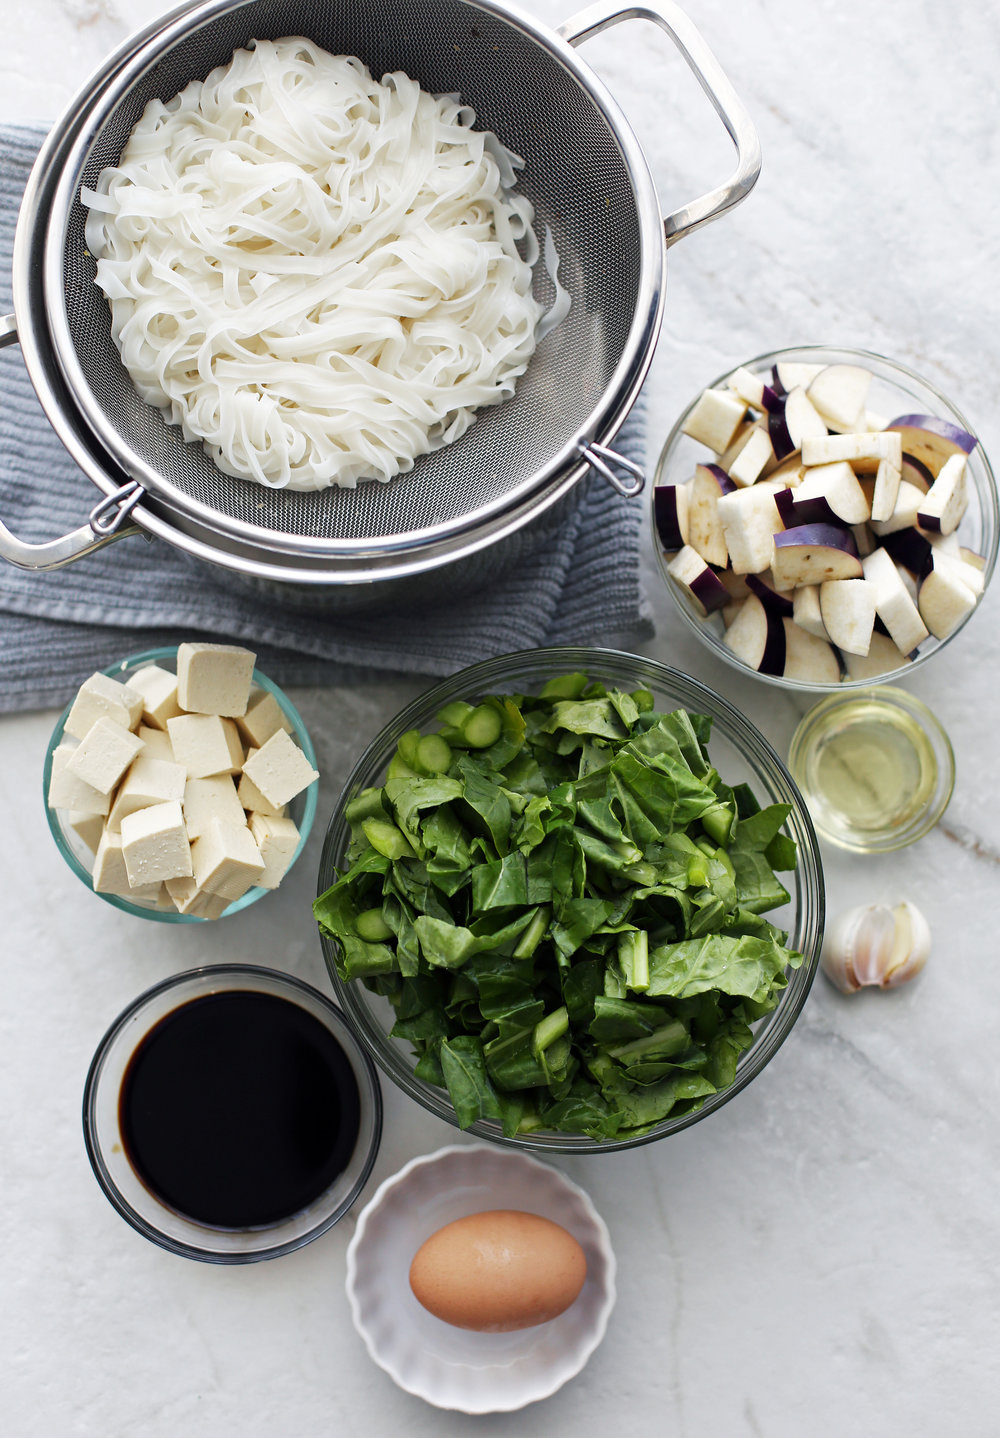 Bowls of cooked rice noodles, tofu, gai lan, eggplants, egg, soy sauce, and garlic.